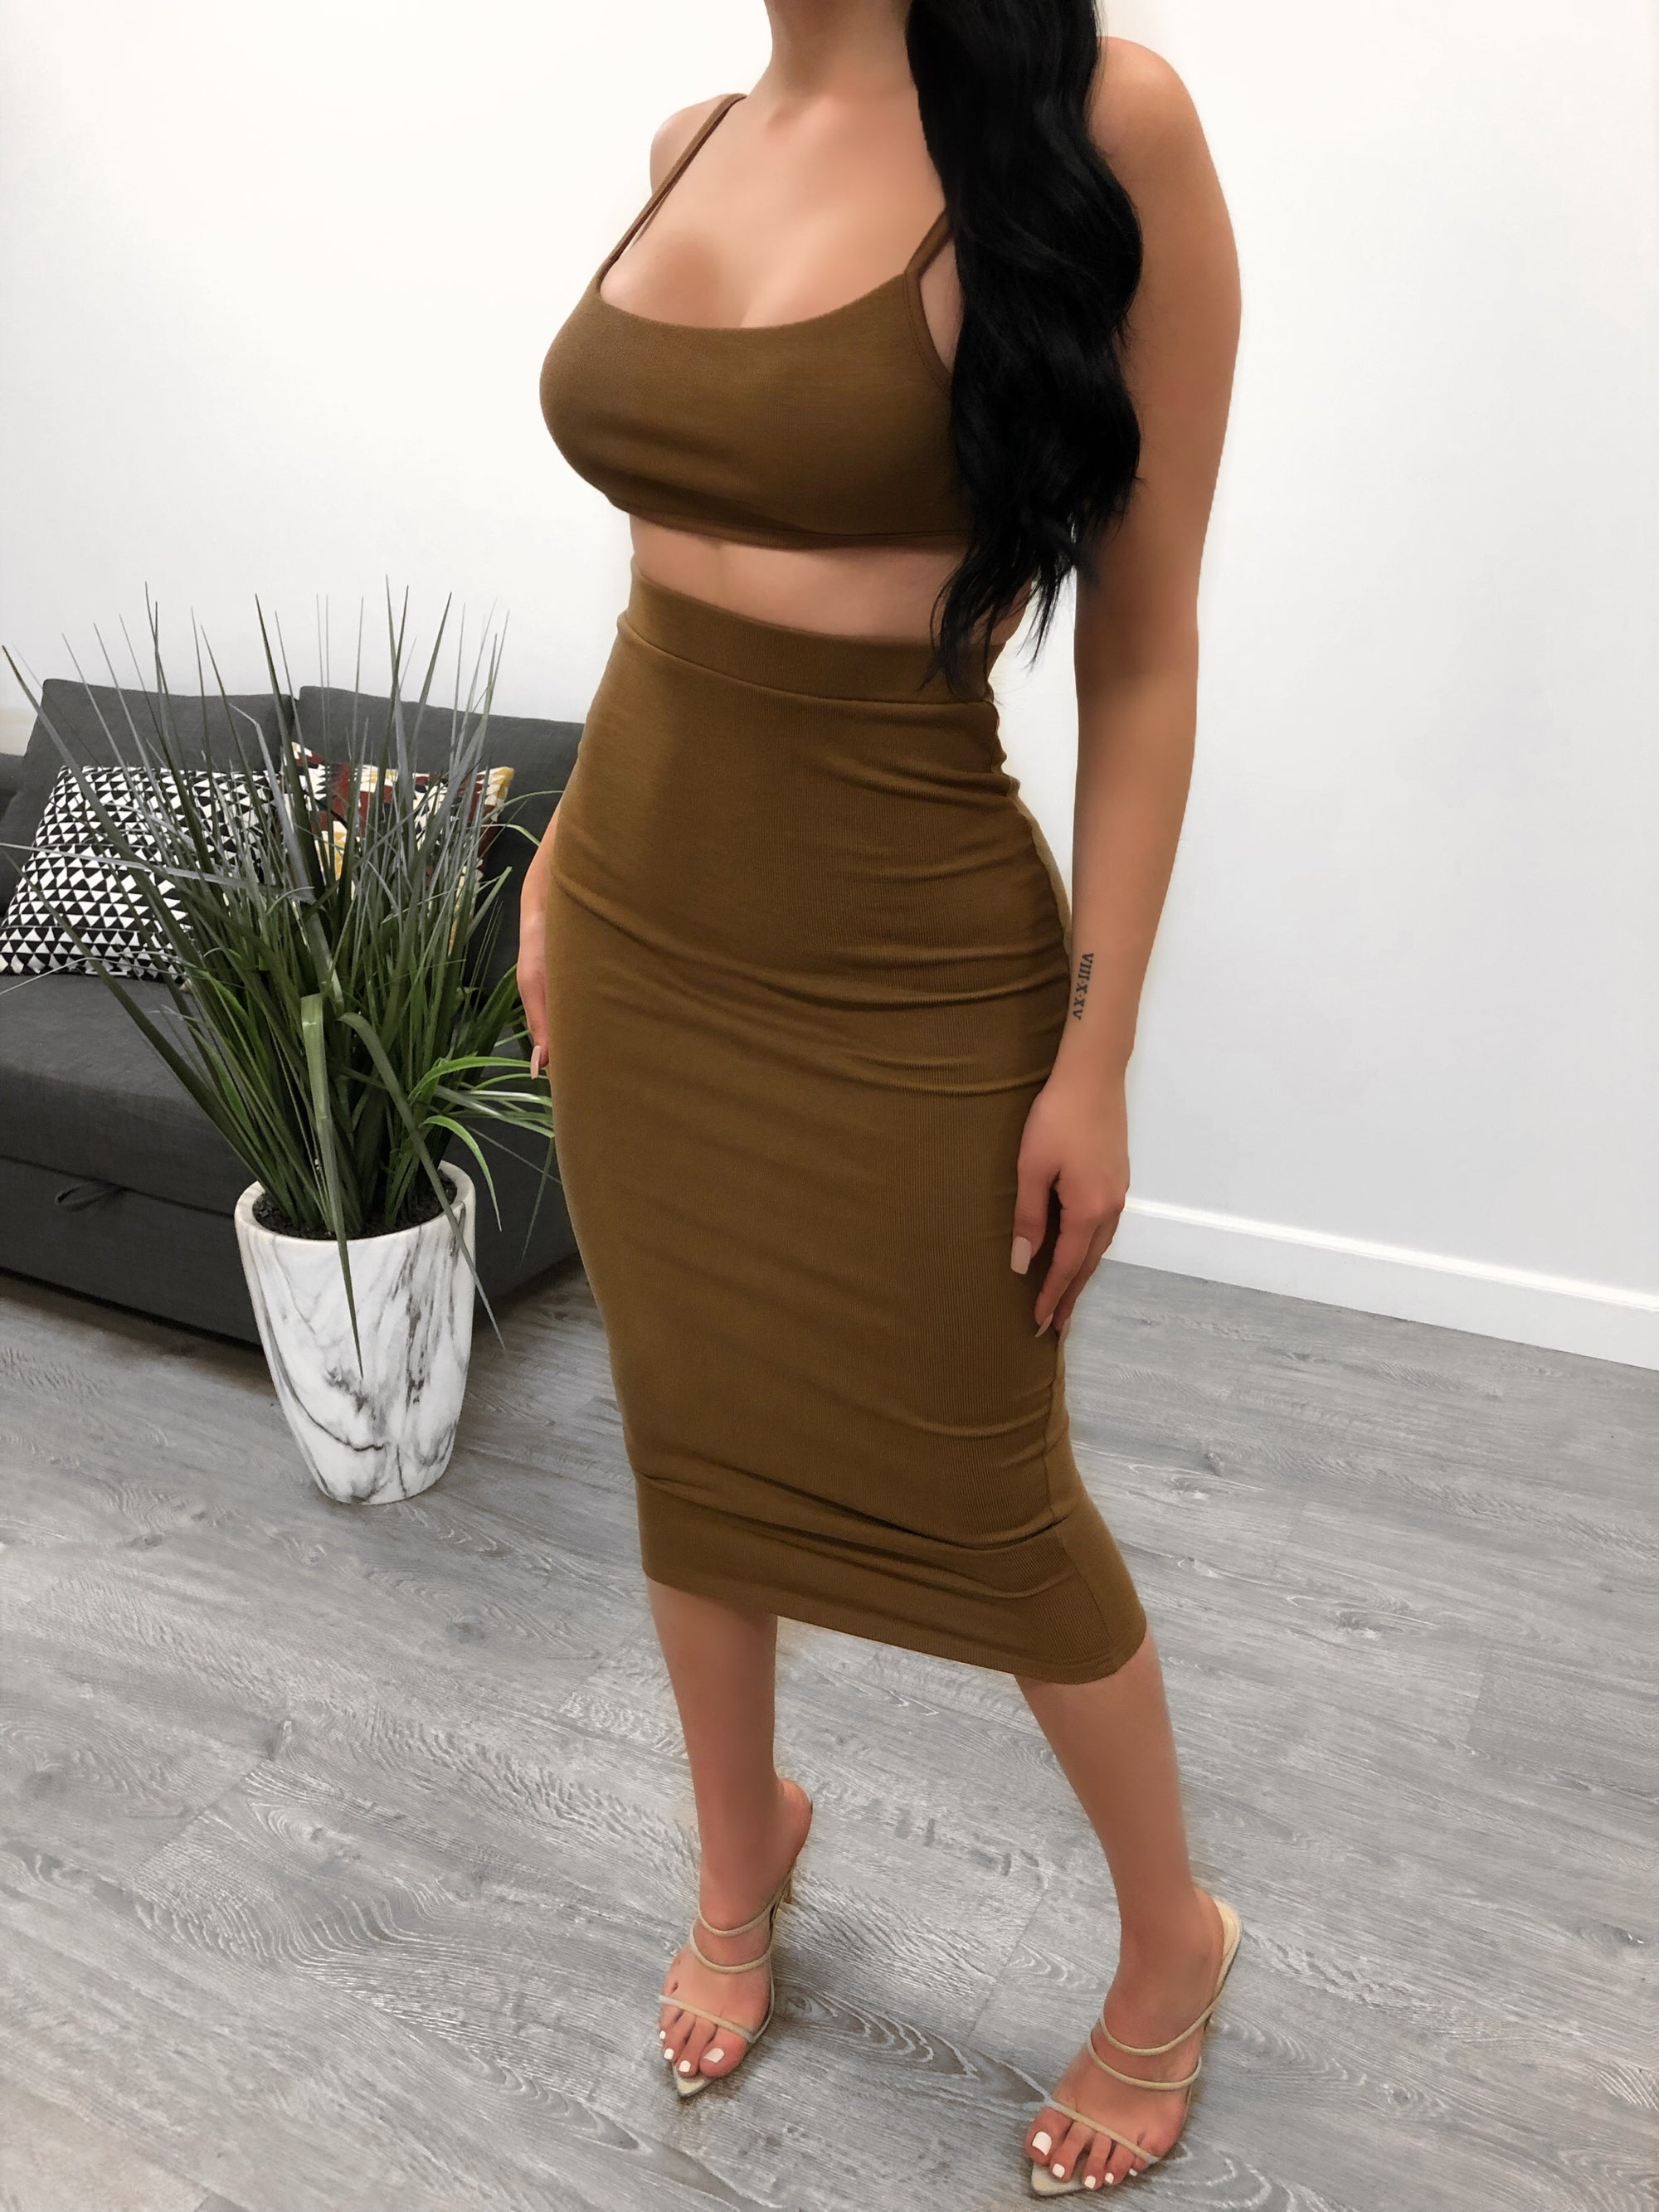 brown two piece set. backless top. non adjustable strap on back for support. high waisted skirt. skirt is below the knee length.